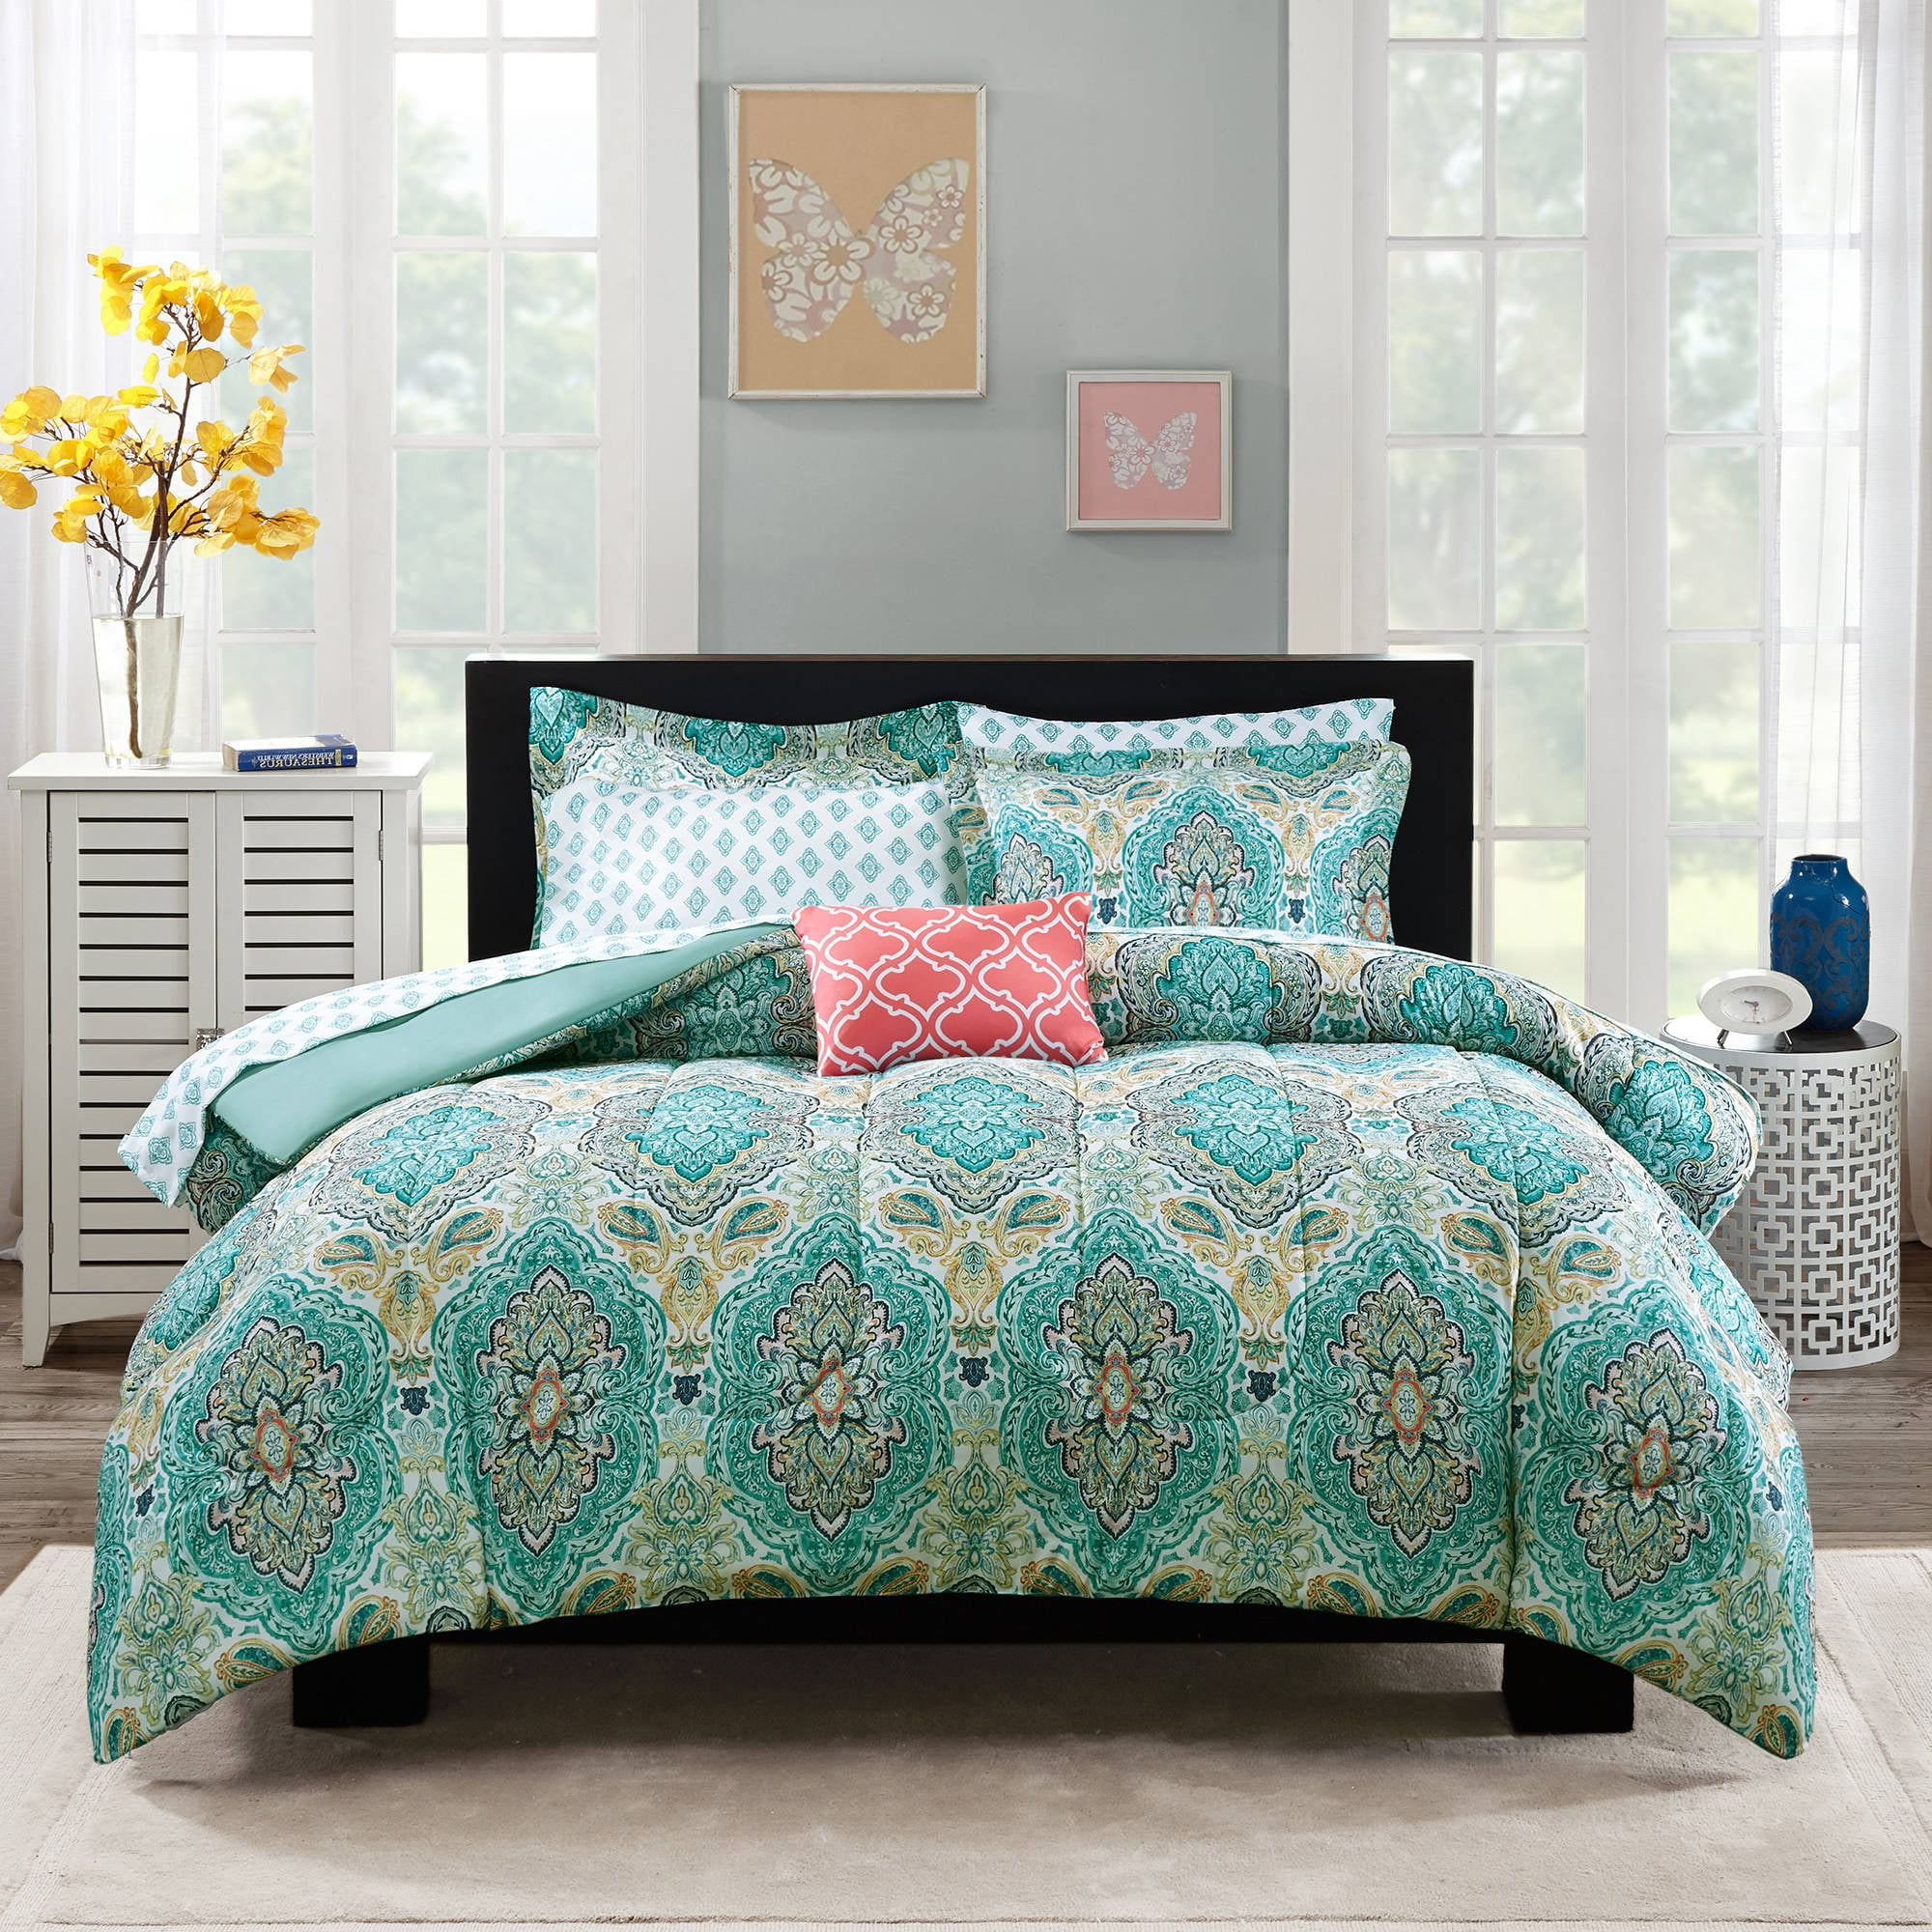 nautical bed nnect quilts baker sheets co a twin comforter ted me sham london bouquet comforters bag set in focus